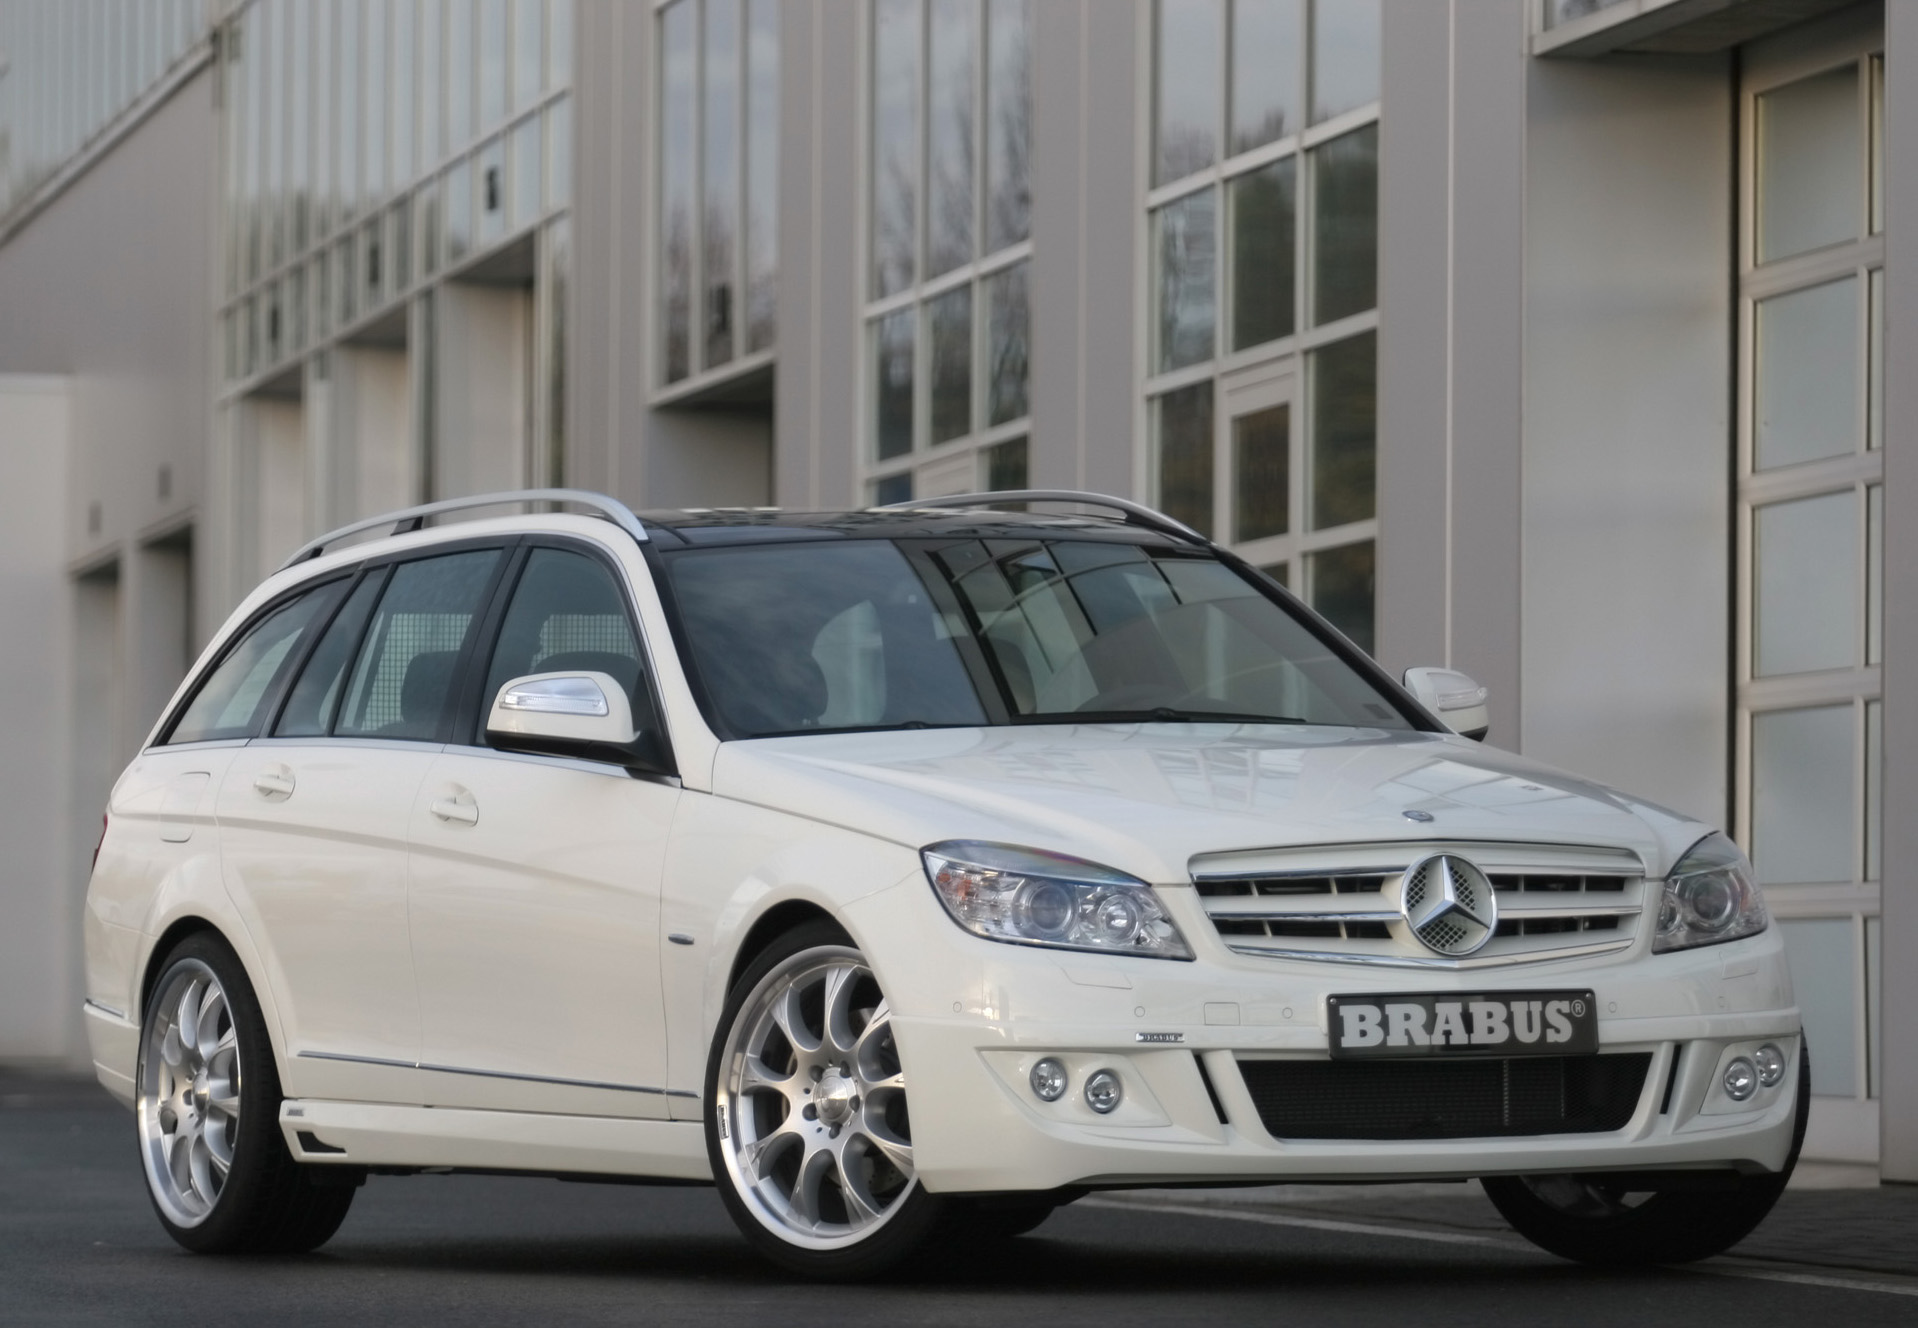 benz c class mercedes wikiwand sedan en elegance kompressor